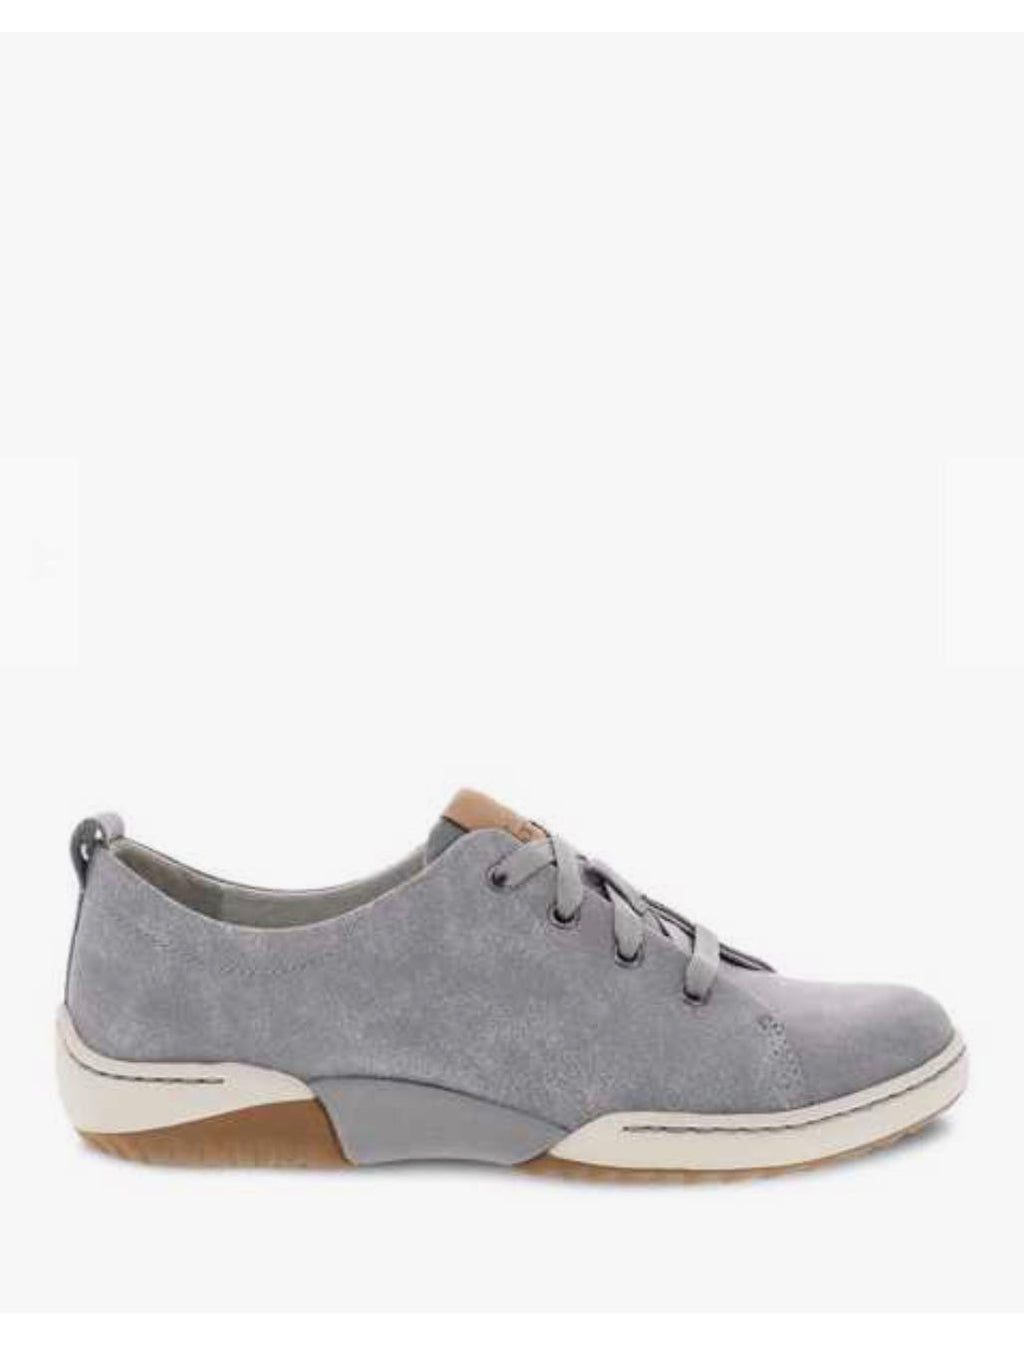 Dansko Renae Sneaker in Grey